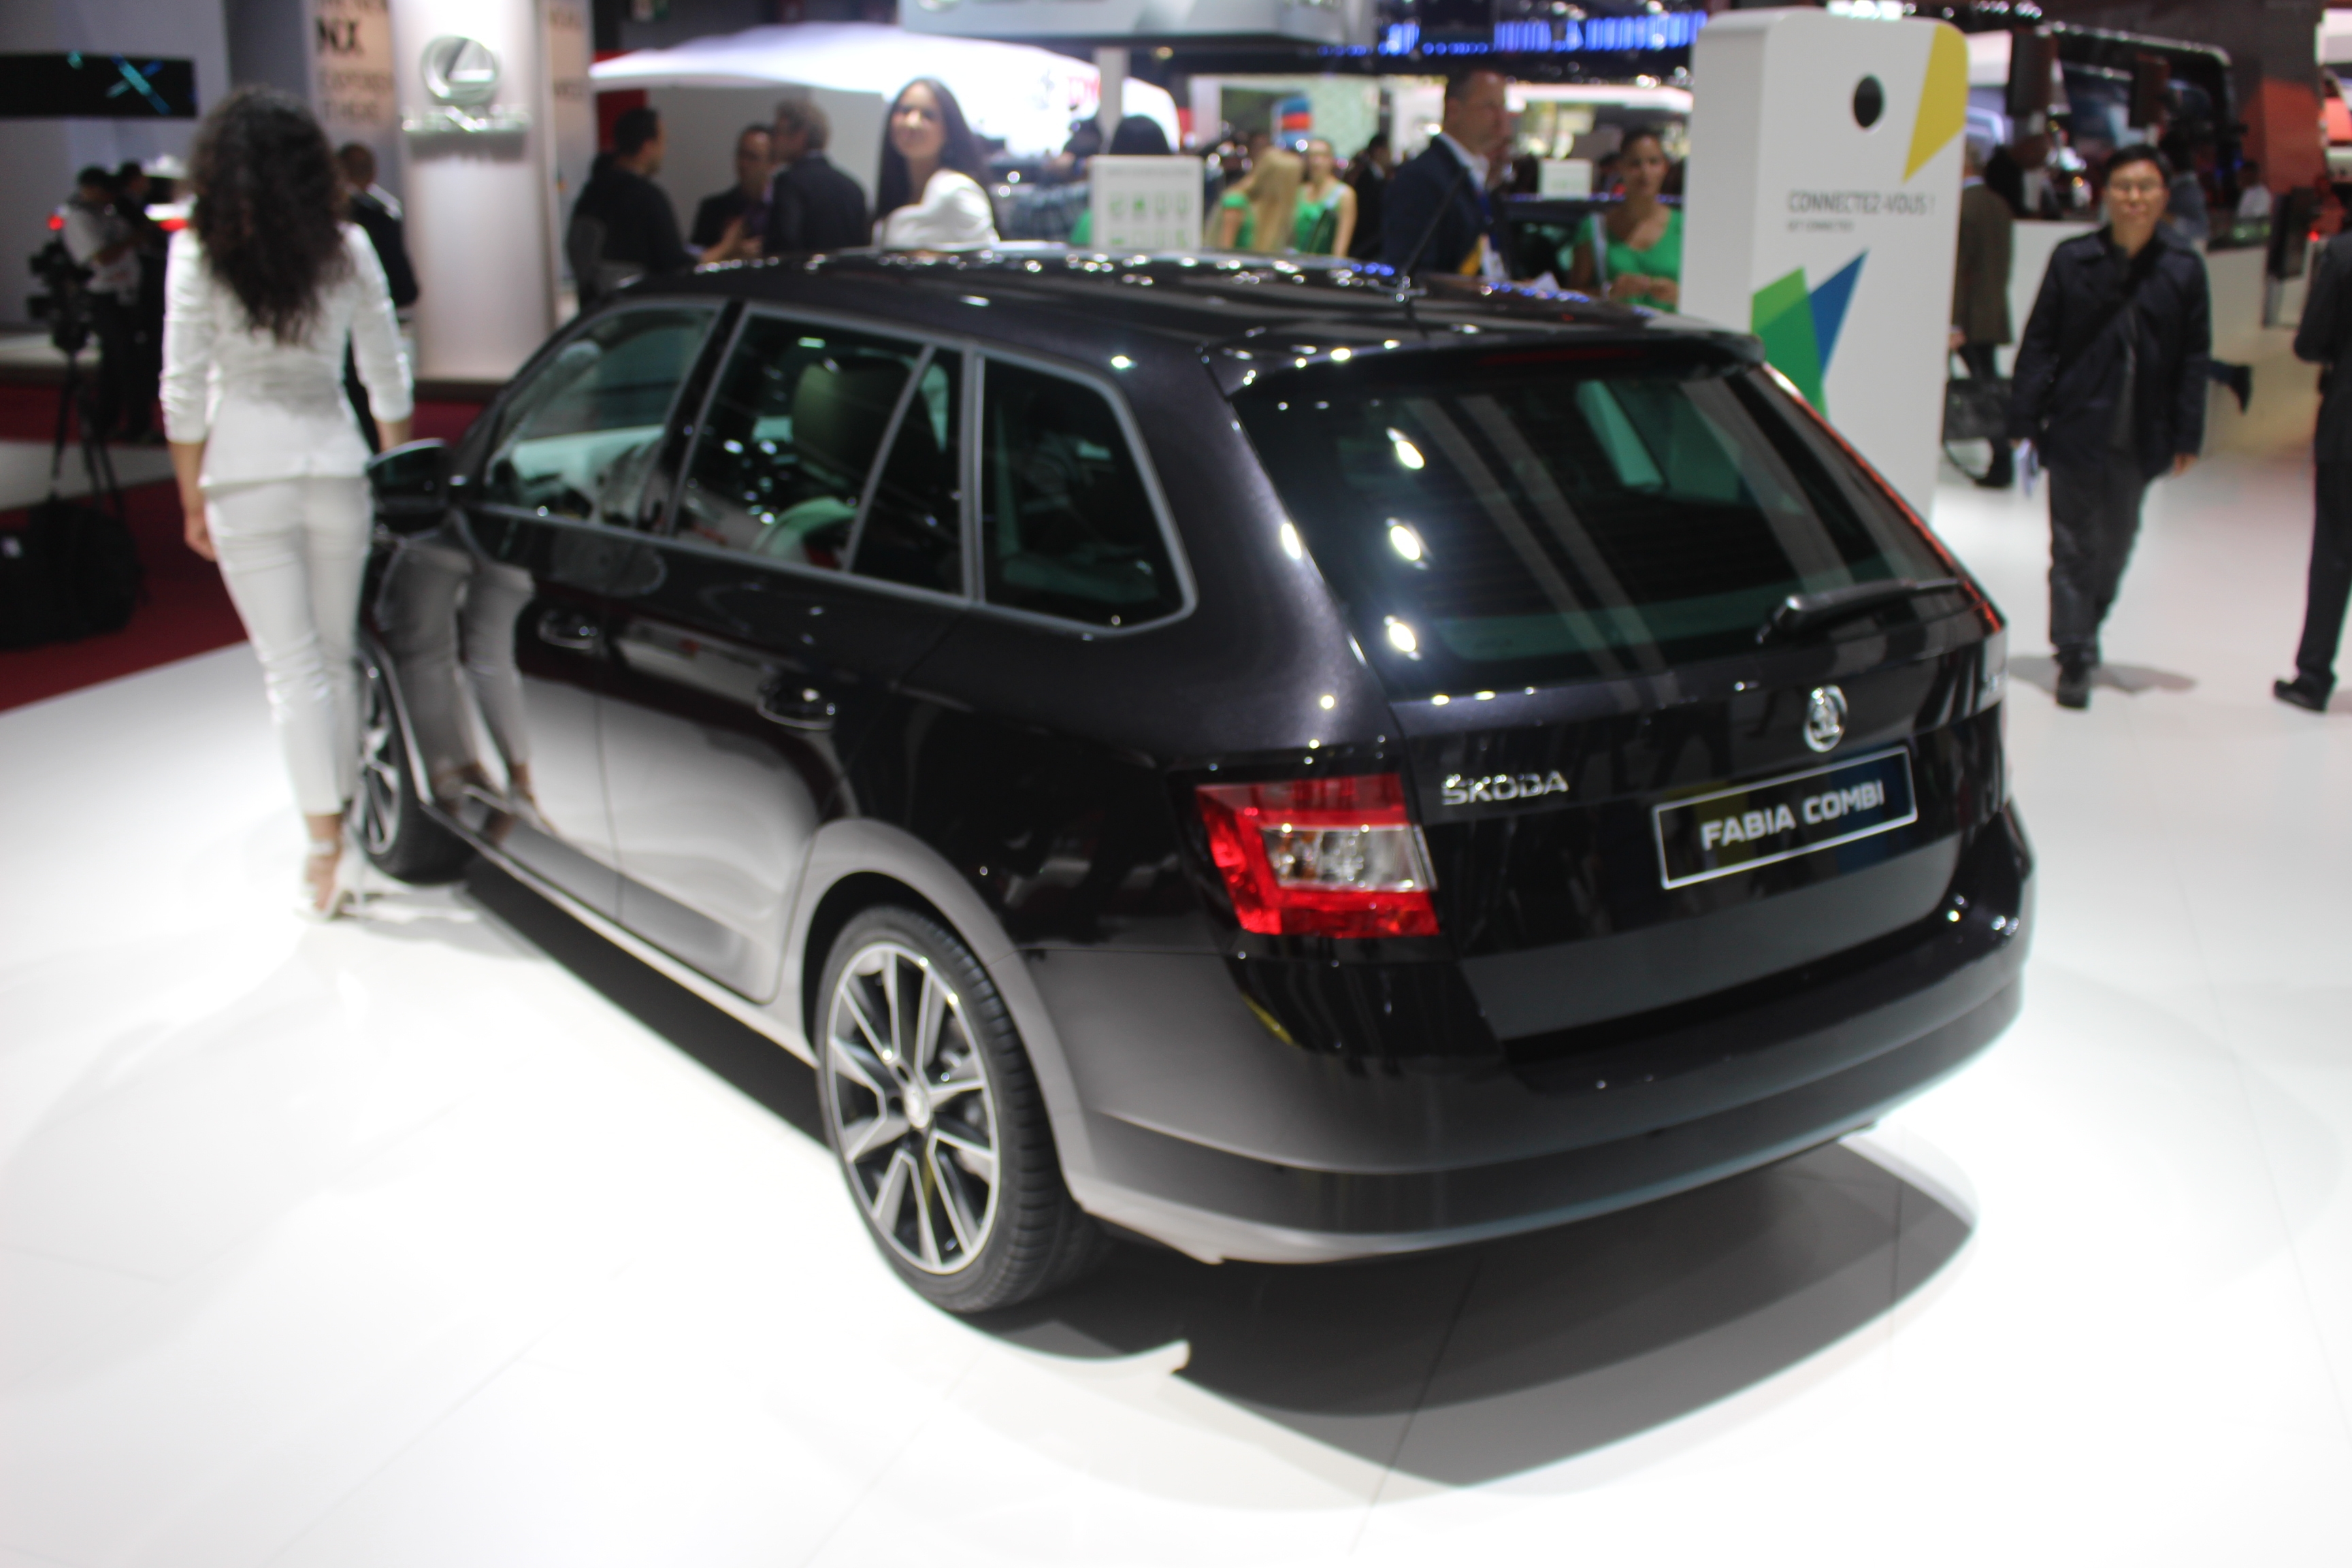 skoda fabia combi du coffre en direct du salon de paris 2014. Black Bedroom Furniture Sets. Home Design Ideas